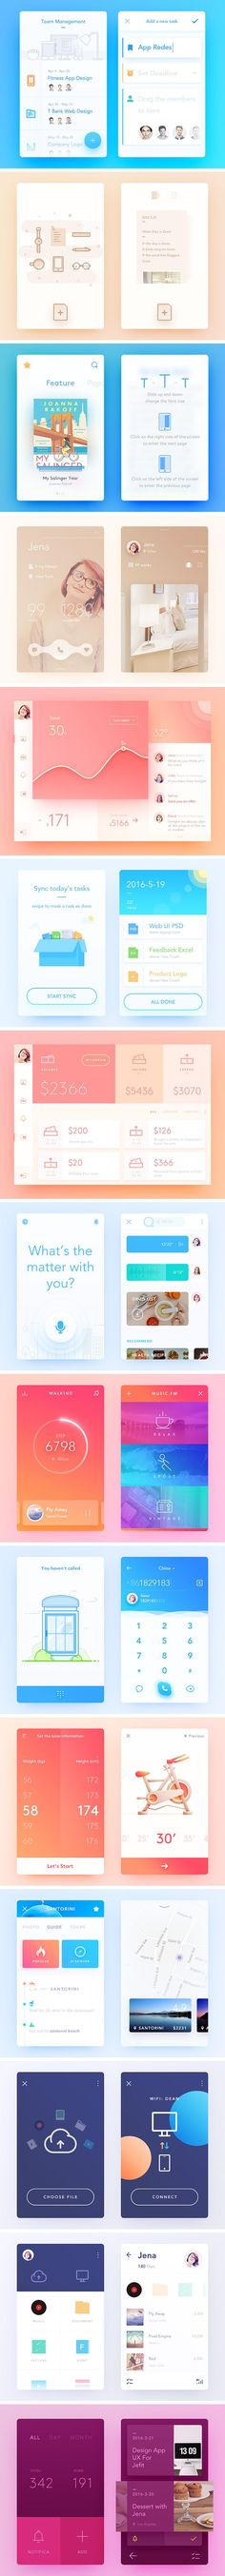 Inspirational UI Elements vol. 3 — download free ui kits by PixelBuddha